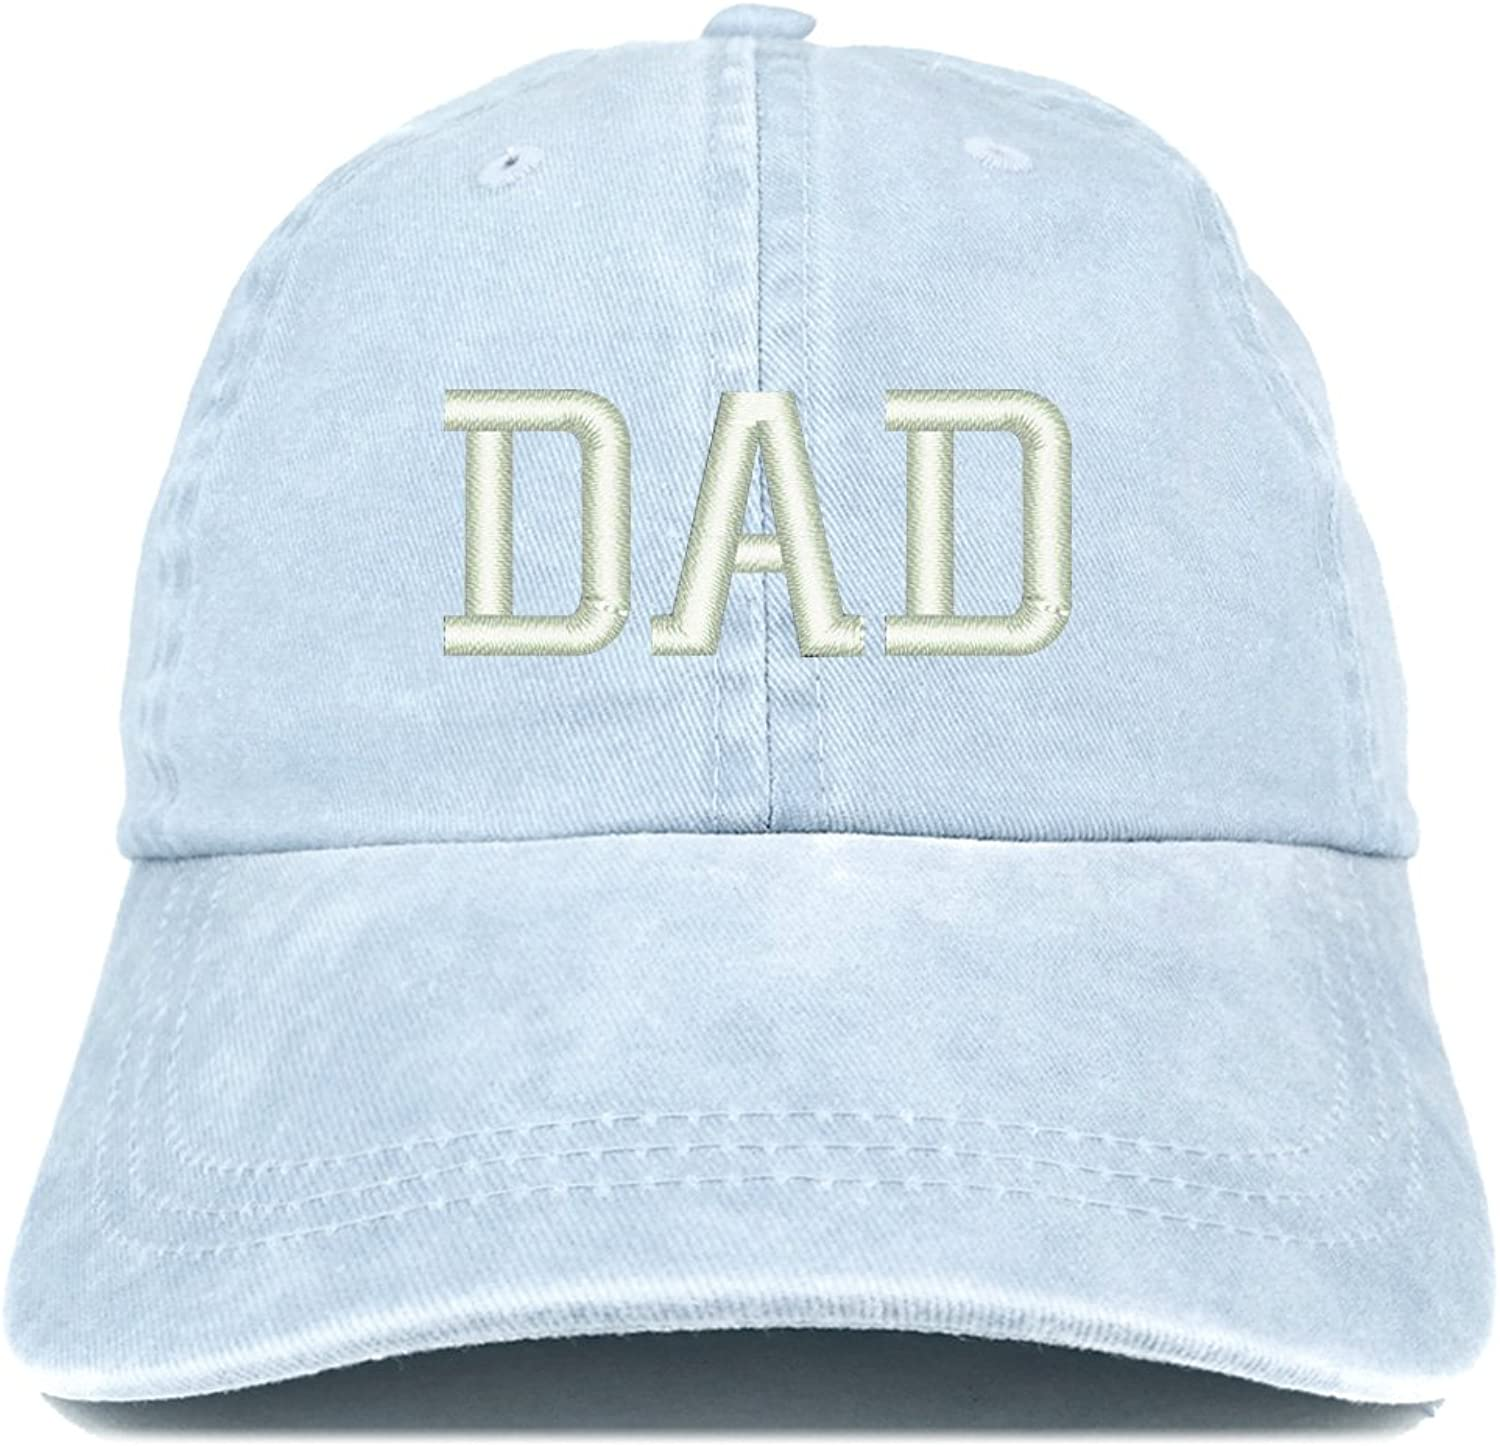 afd78923 Trendy Apparel Apparel Apparel Shop Dad Embroidered Pigment Dyed Low  Profile Cotton Cap 64470b